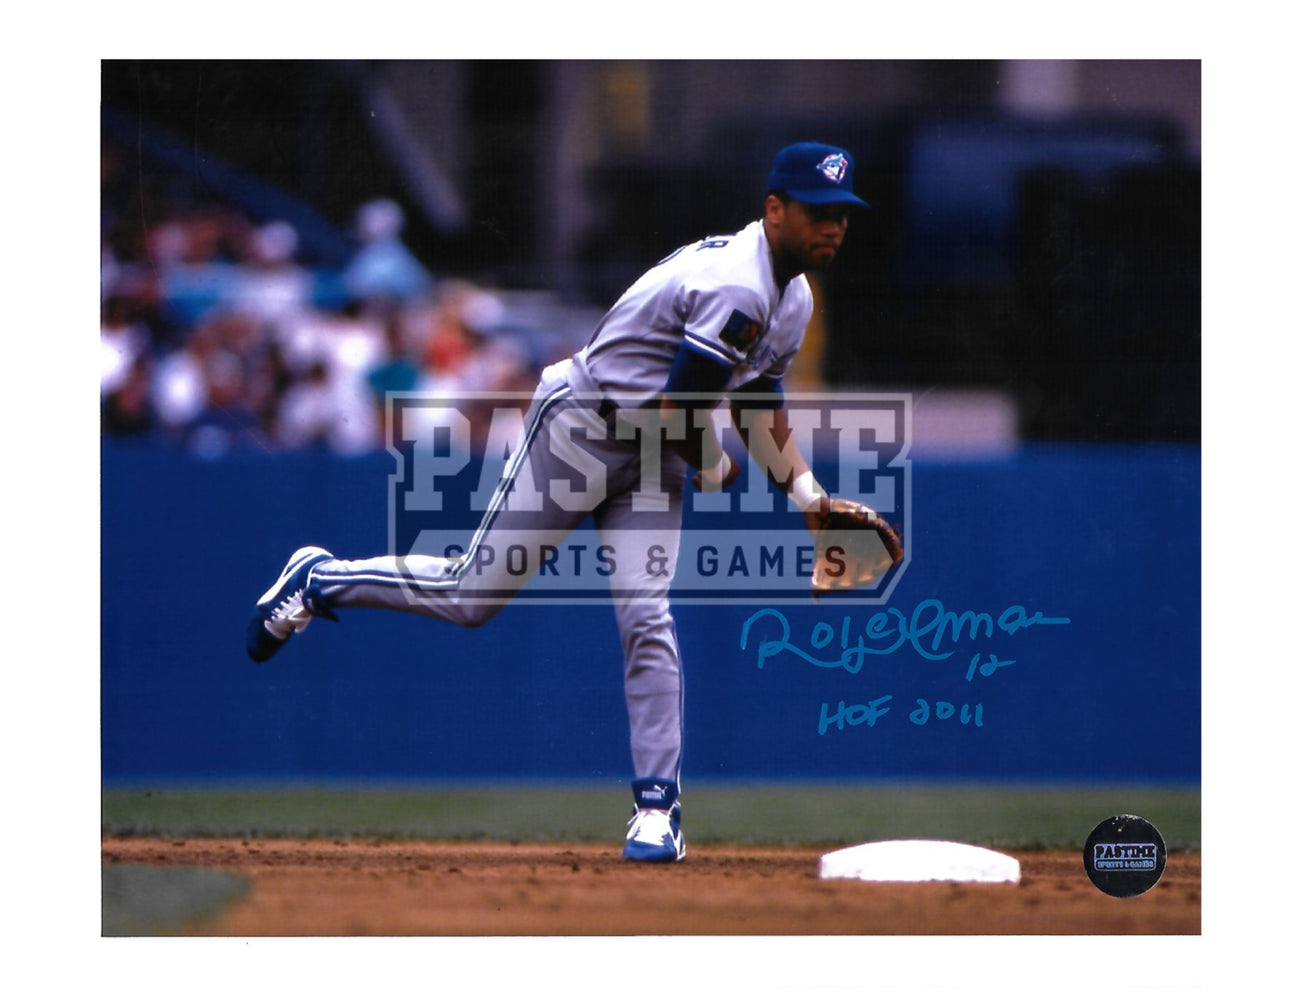 Roberto Alomar Autographed 8X10 Toronto Blue Jays (Throwing Ball) - Pastime Sports & Games